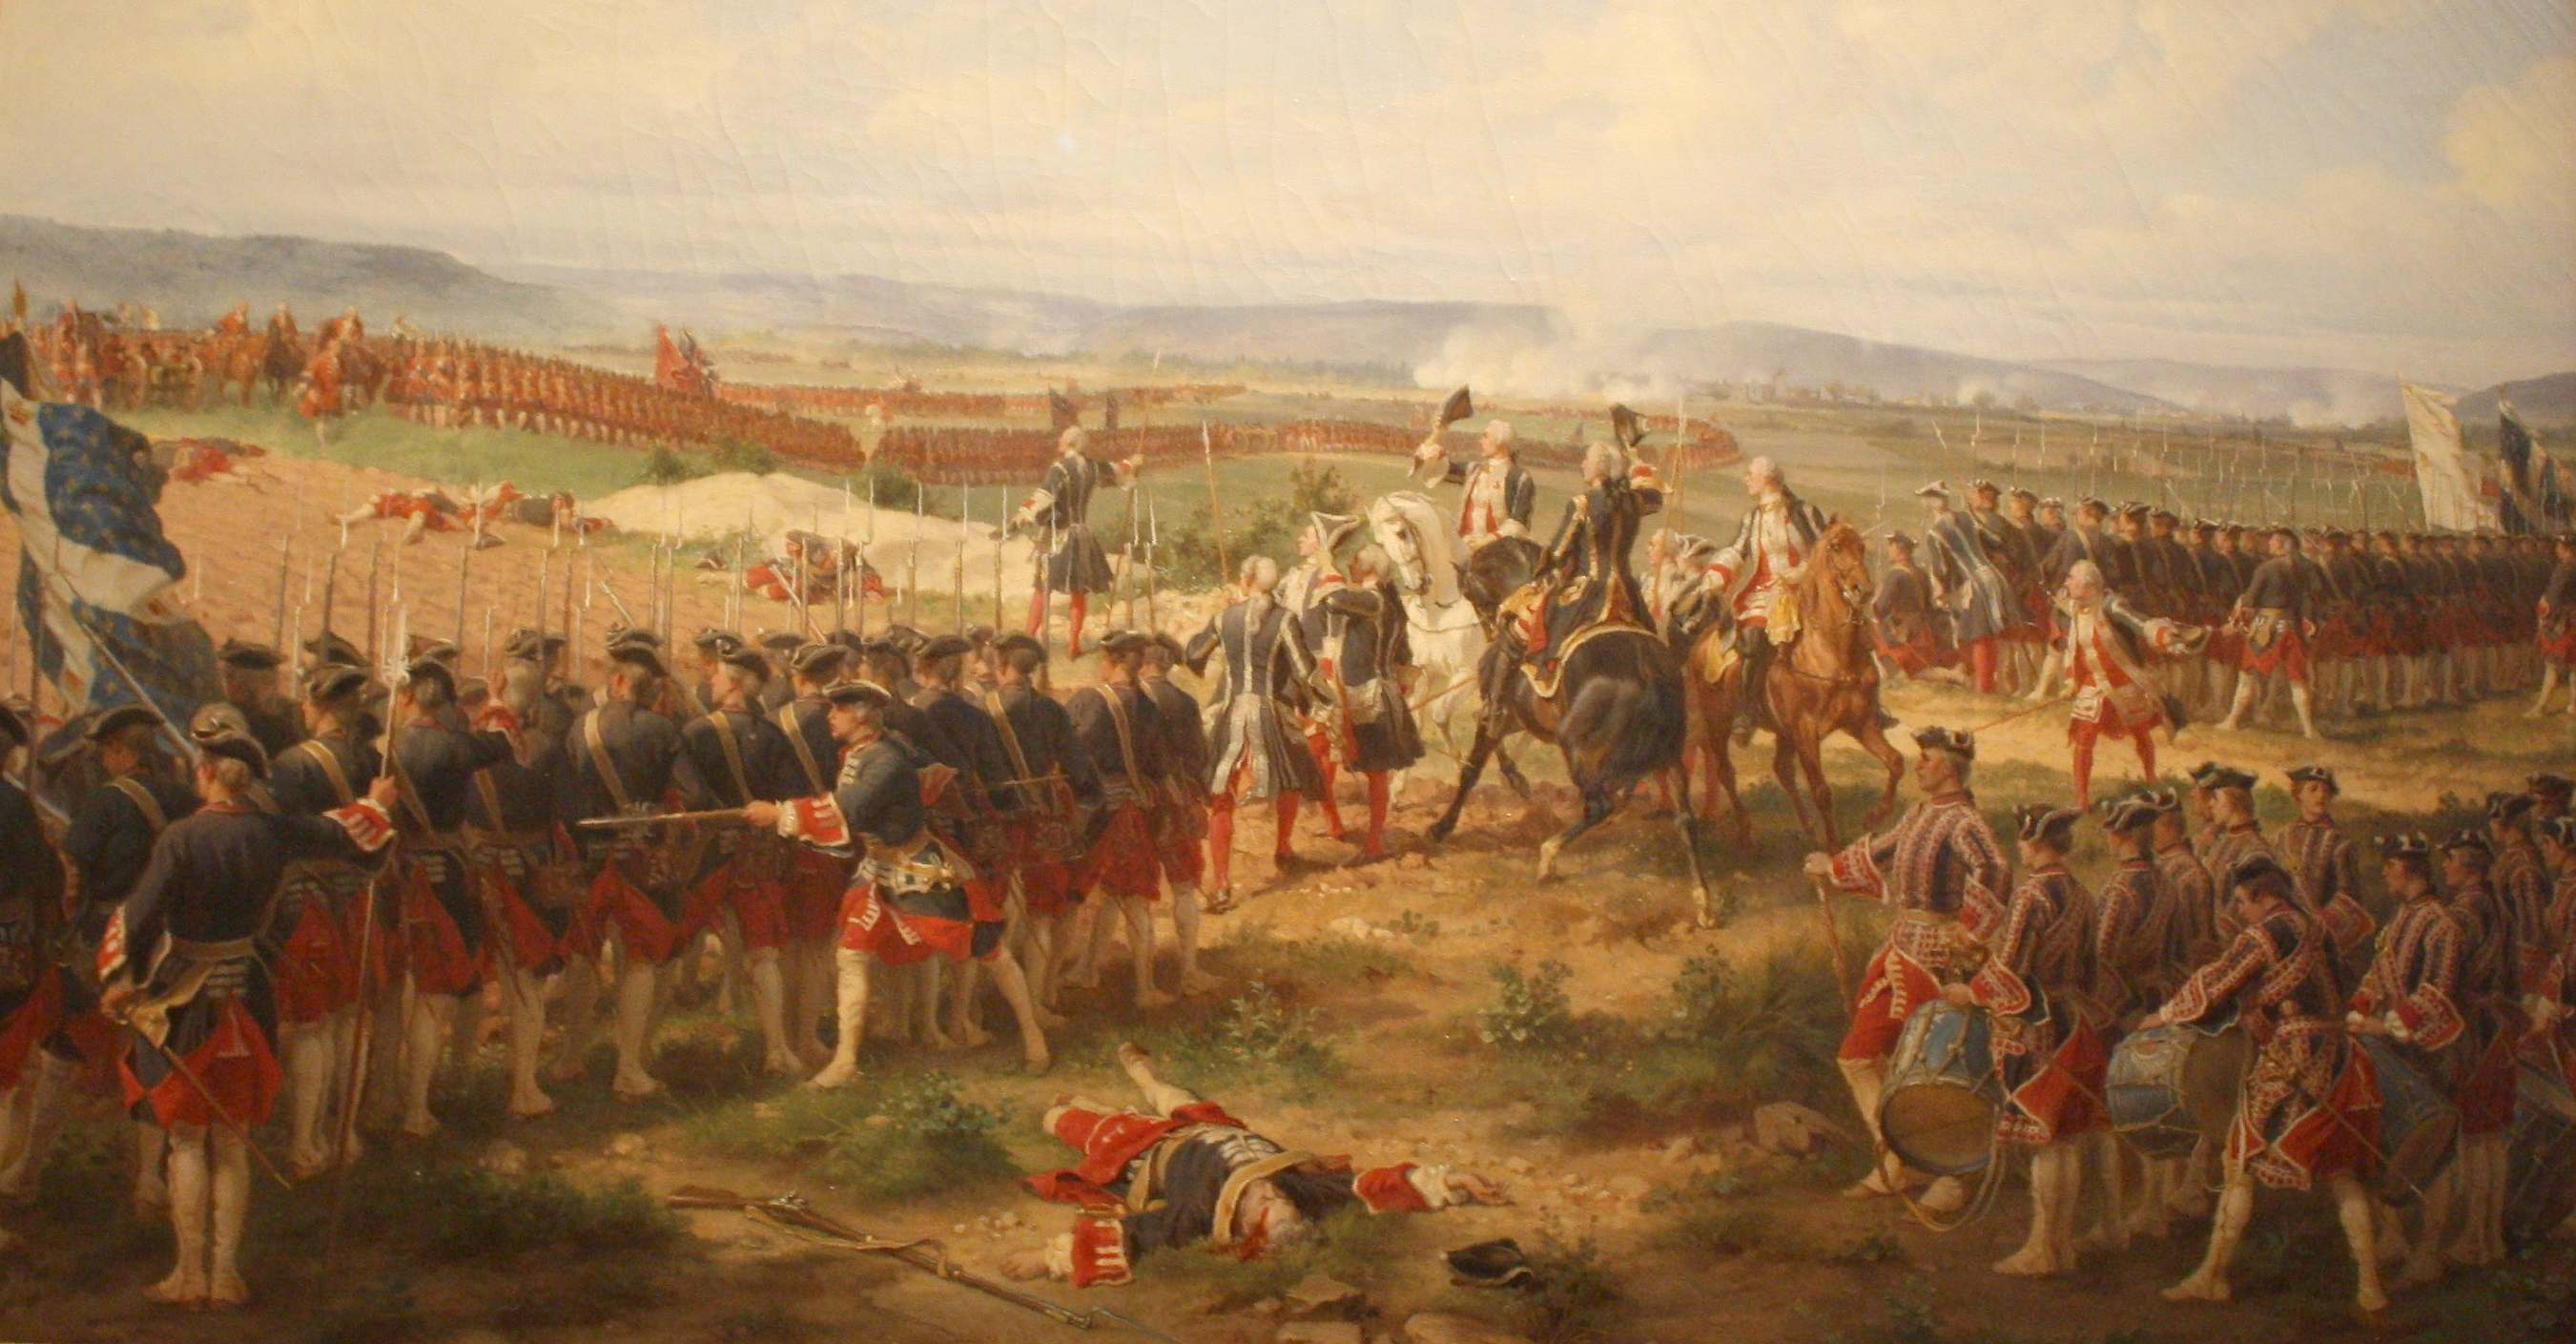 The Battle of Fontenoy, 1745 at which Phoebe Hessel was wounded, painted  by Felix Philippoteaux, 1873 [Wikimedia Commons]